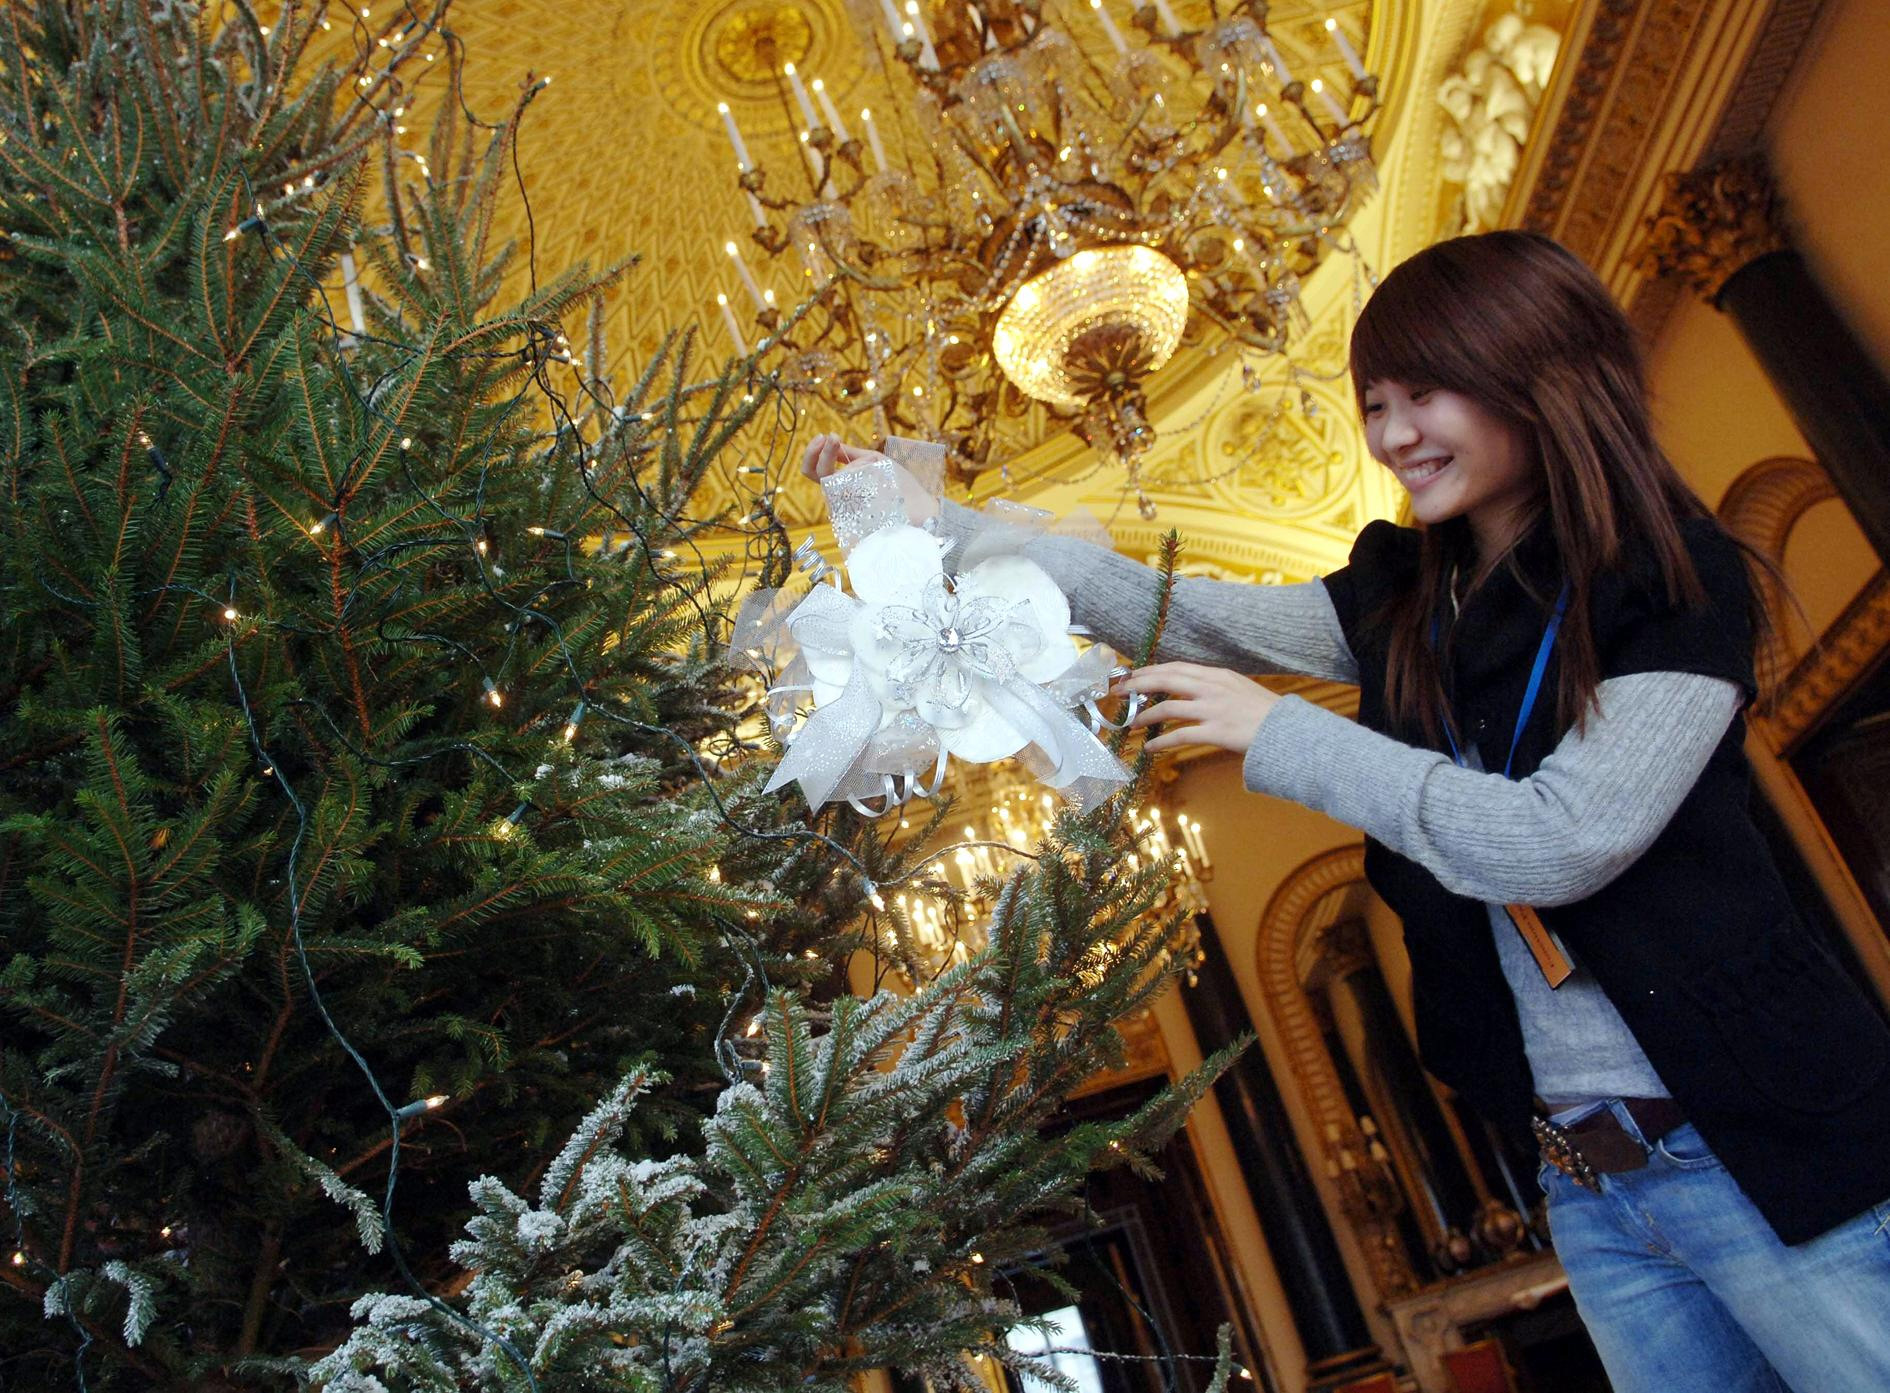 STANDALONE PHOTO  Huai-min Hsieh of Chelsea College of Art & Design helps decorate a christmas tree in Buckingham Palace today in preparation for tomorrow's young acheivers reception hosted by the Queen and other members of the Royal family.   (Photo by Stefan Rousseau - PA Images/PA Images via Getty Images)